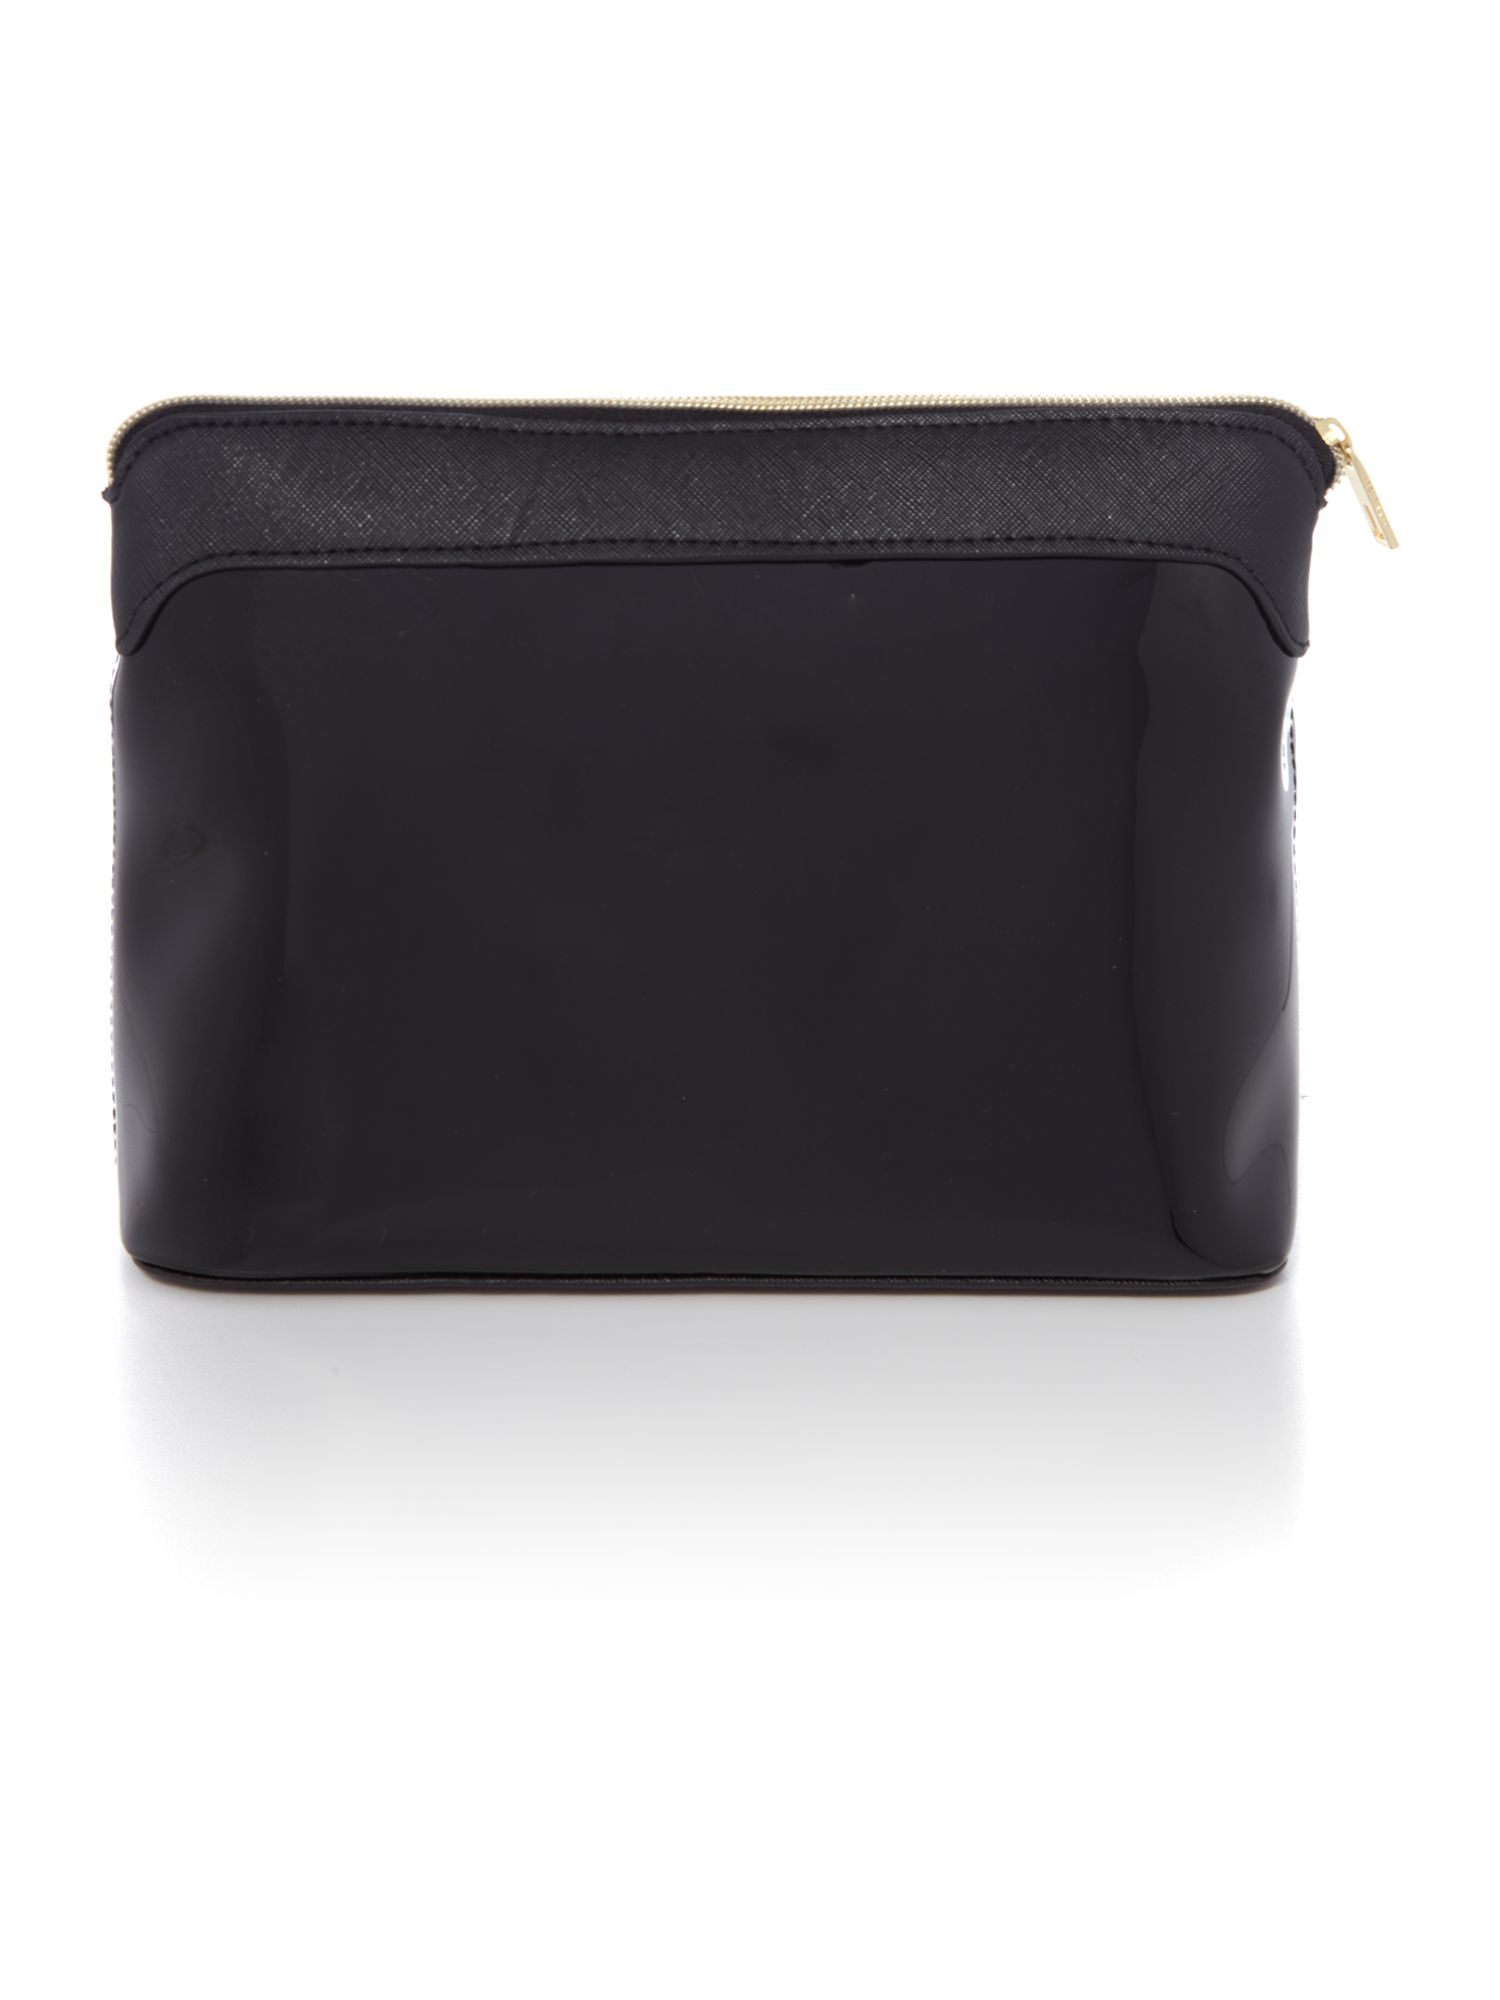 ted baker jesamy black large bow cosmetic bag in black lyst